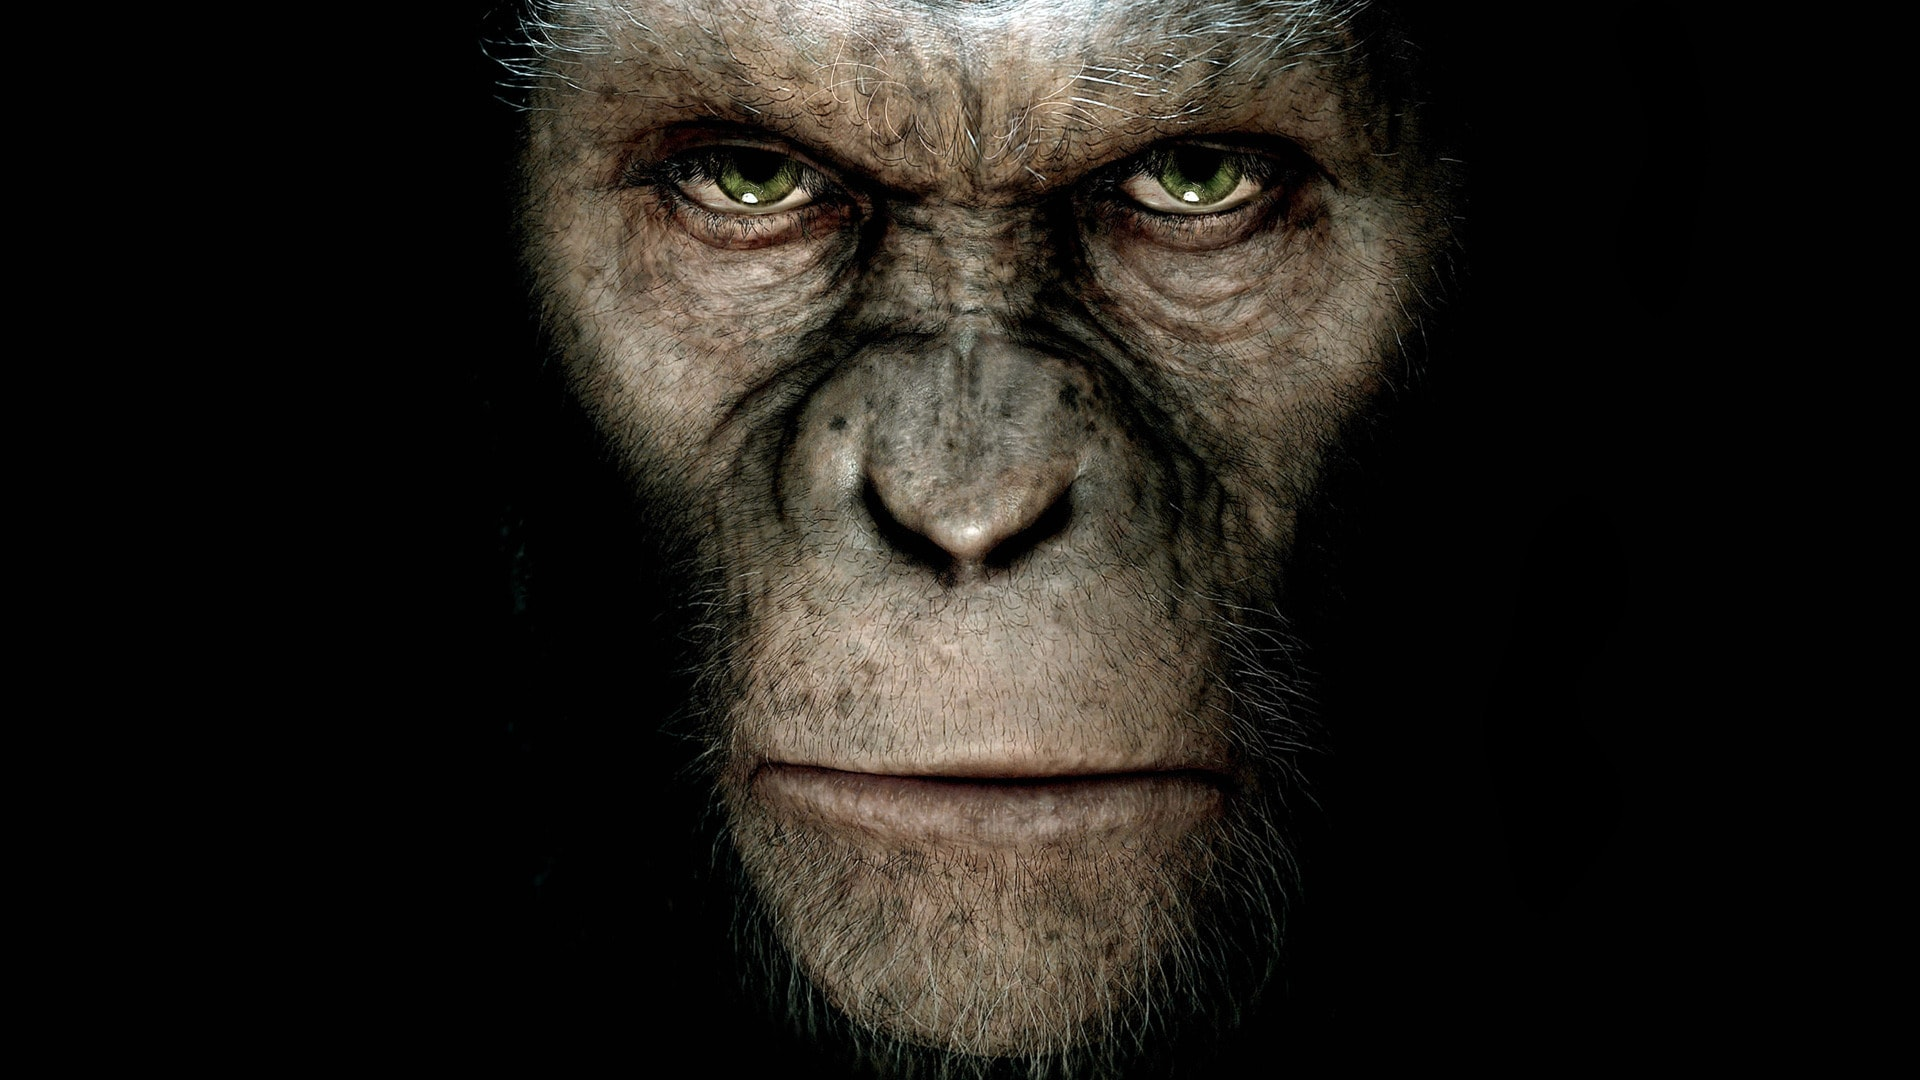 Dawn of the Planet of the Apes Wallpapers hd